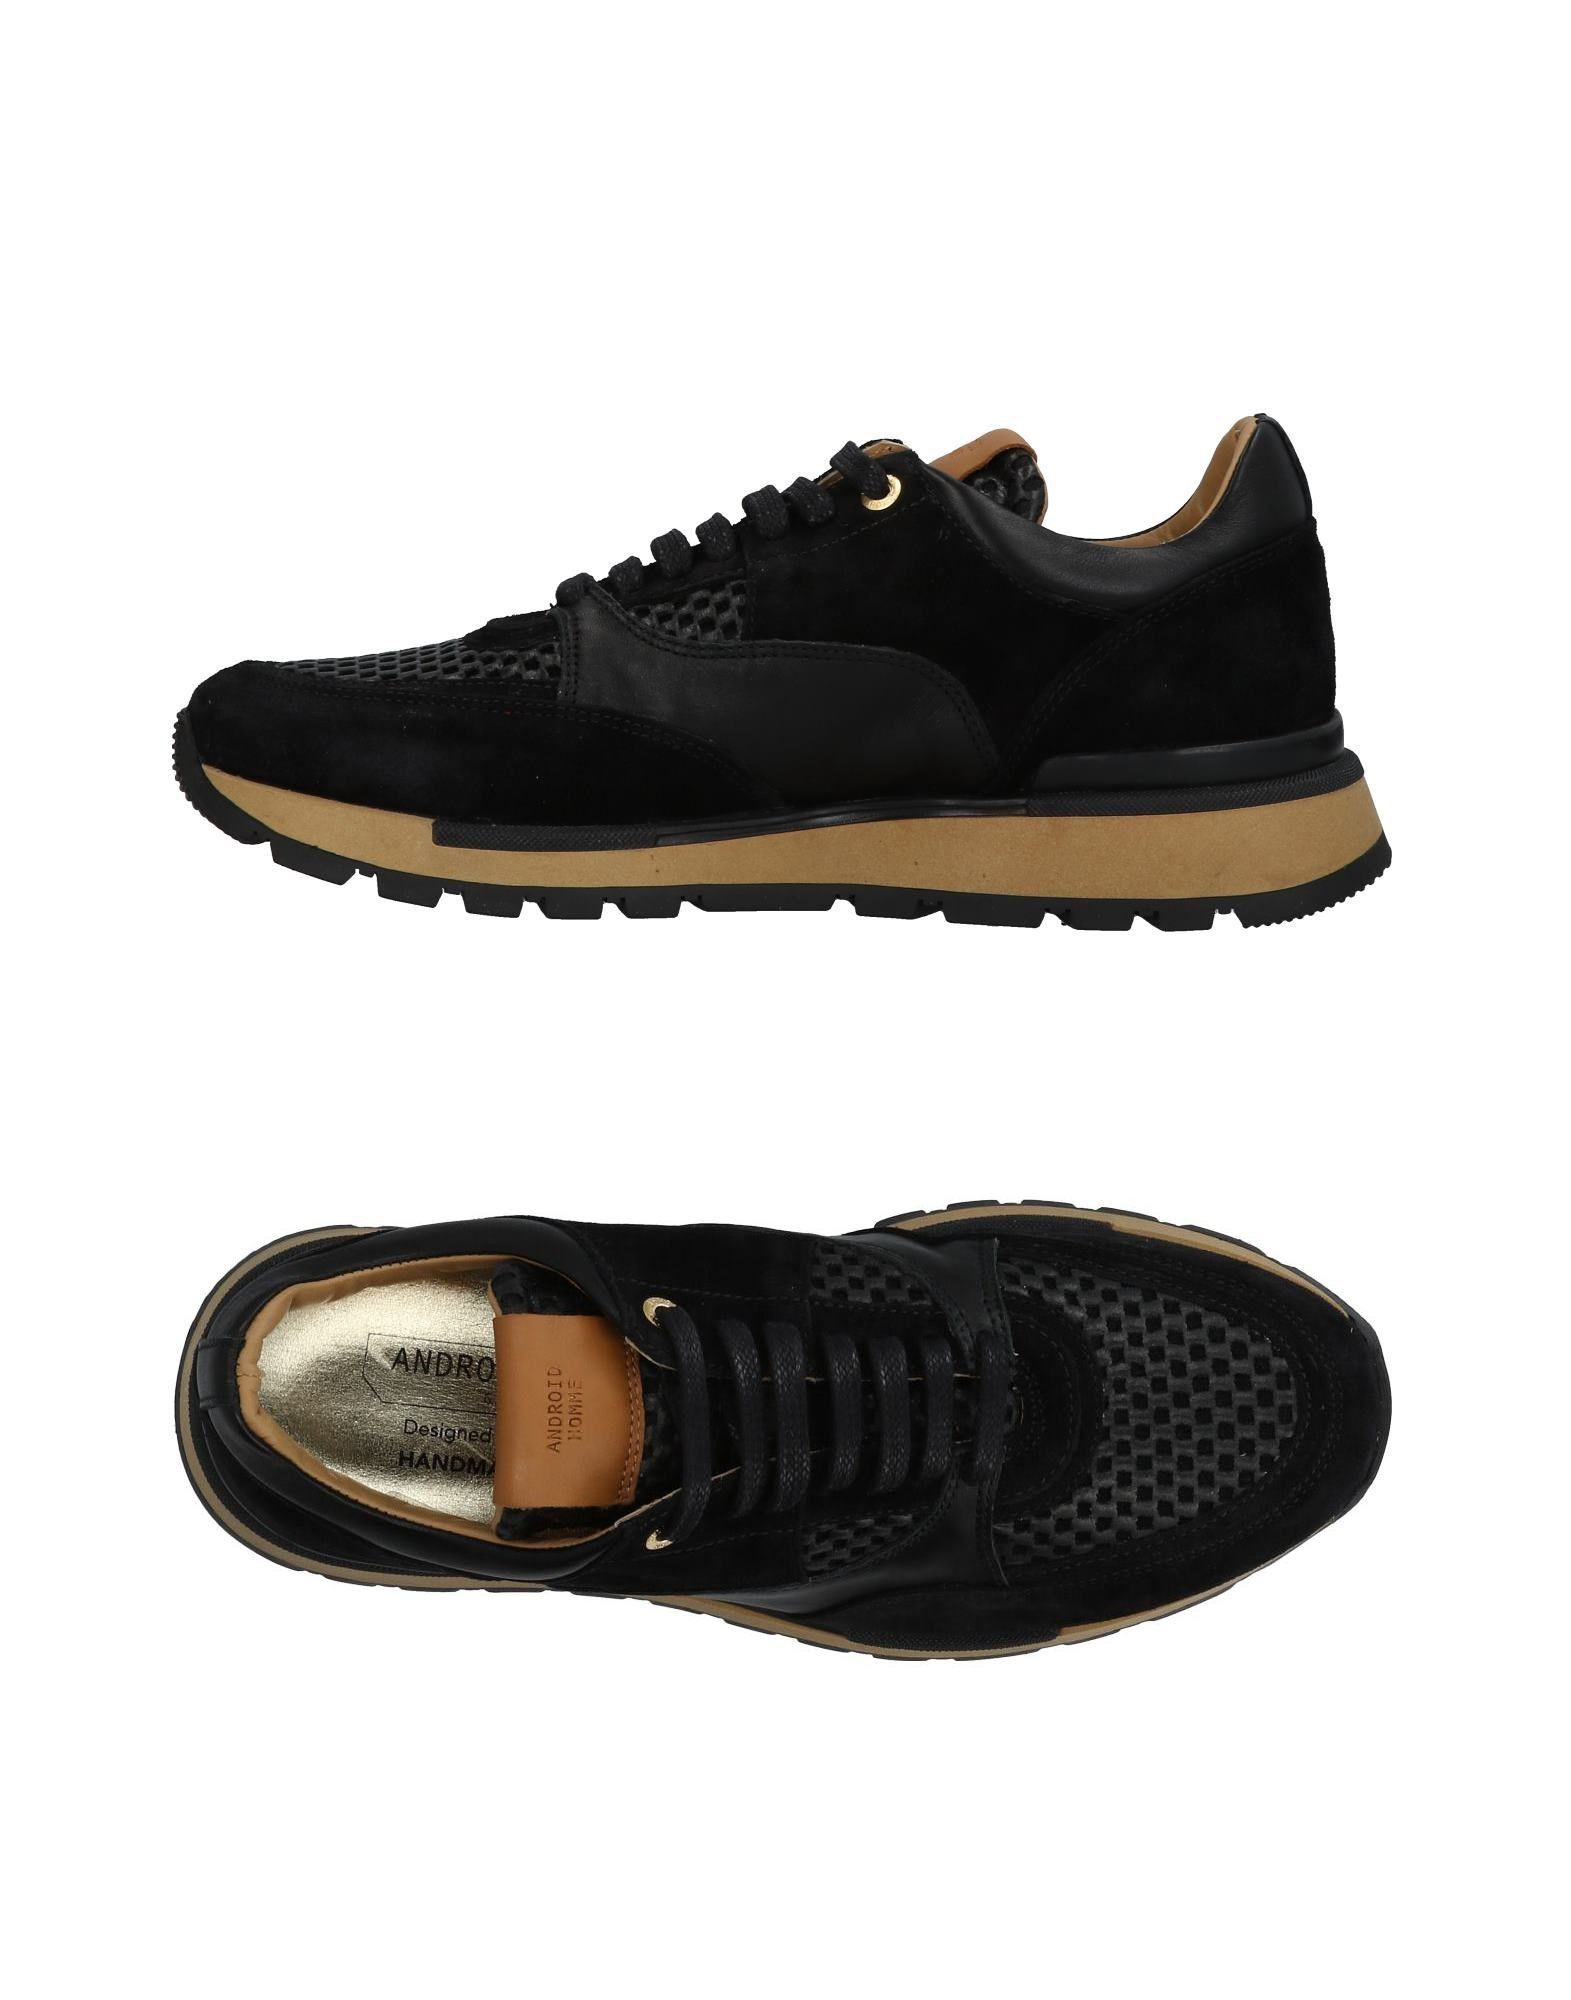 ANDROID HOMME Sneakers in Black